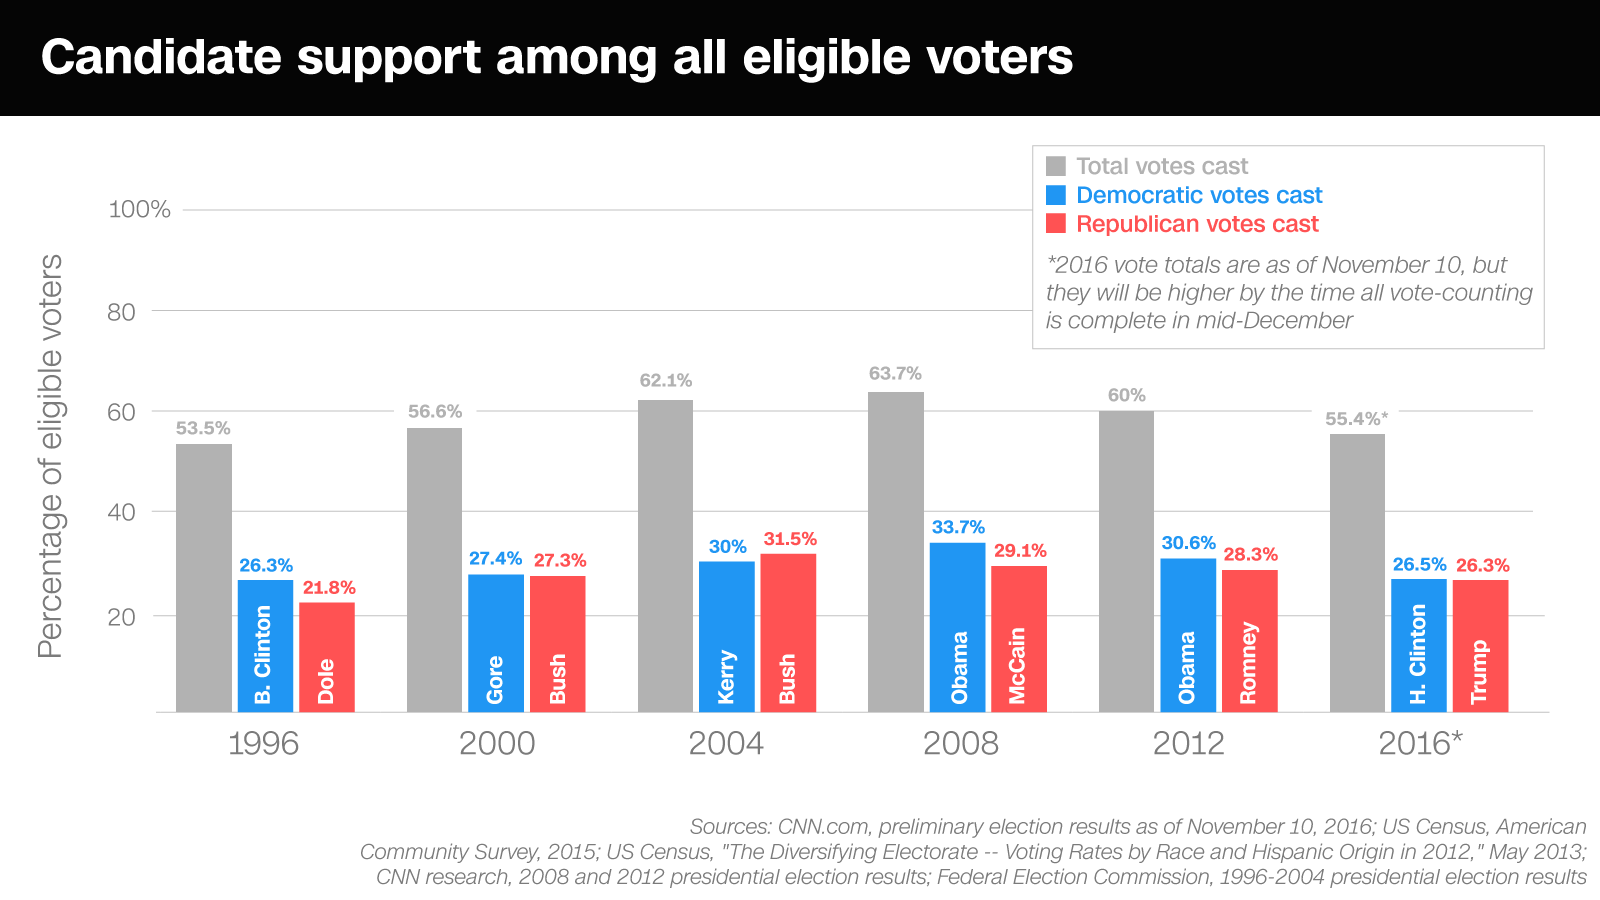 https://i2.wp.com/i.cdn.turner.com/cnn/.e/interactive/html5-video-media/2016/11/10/turnout_full_scale_all_voters_v2update.png